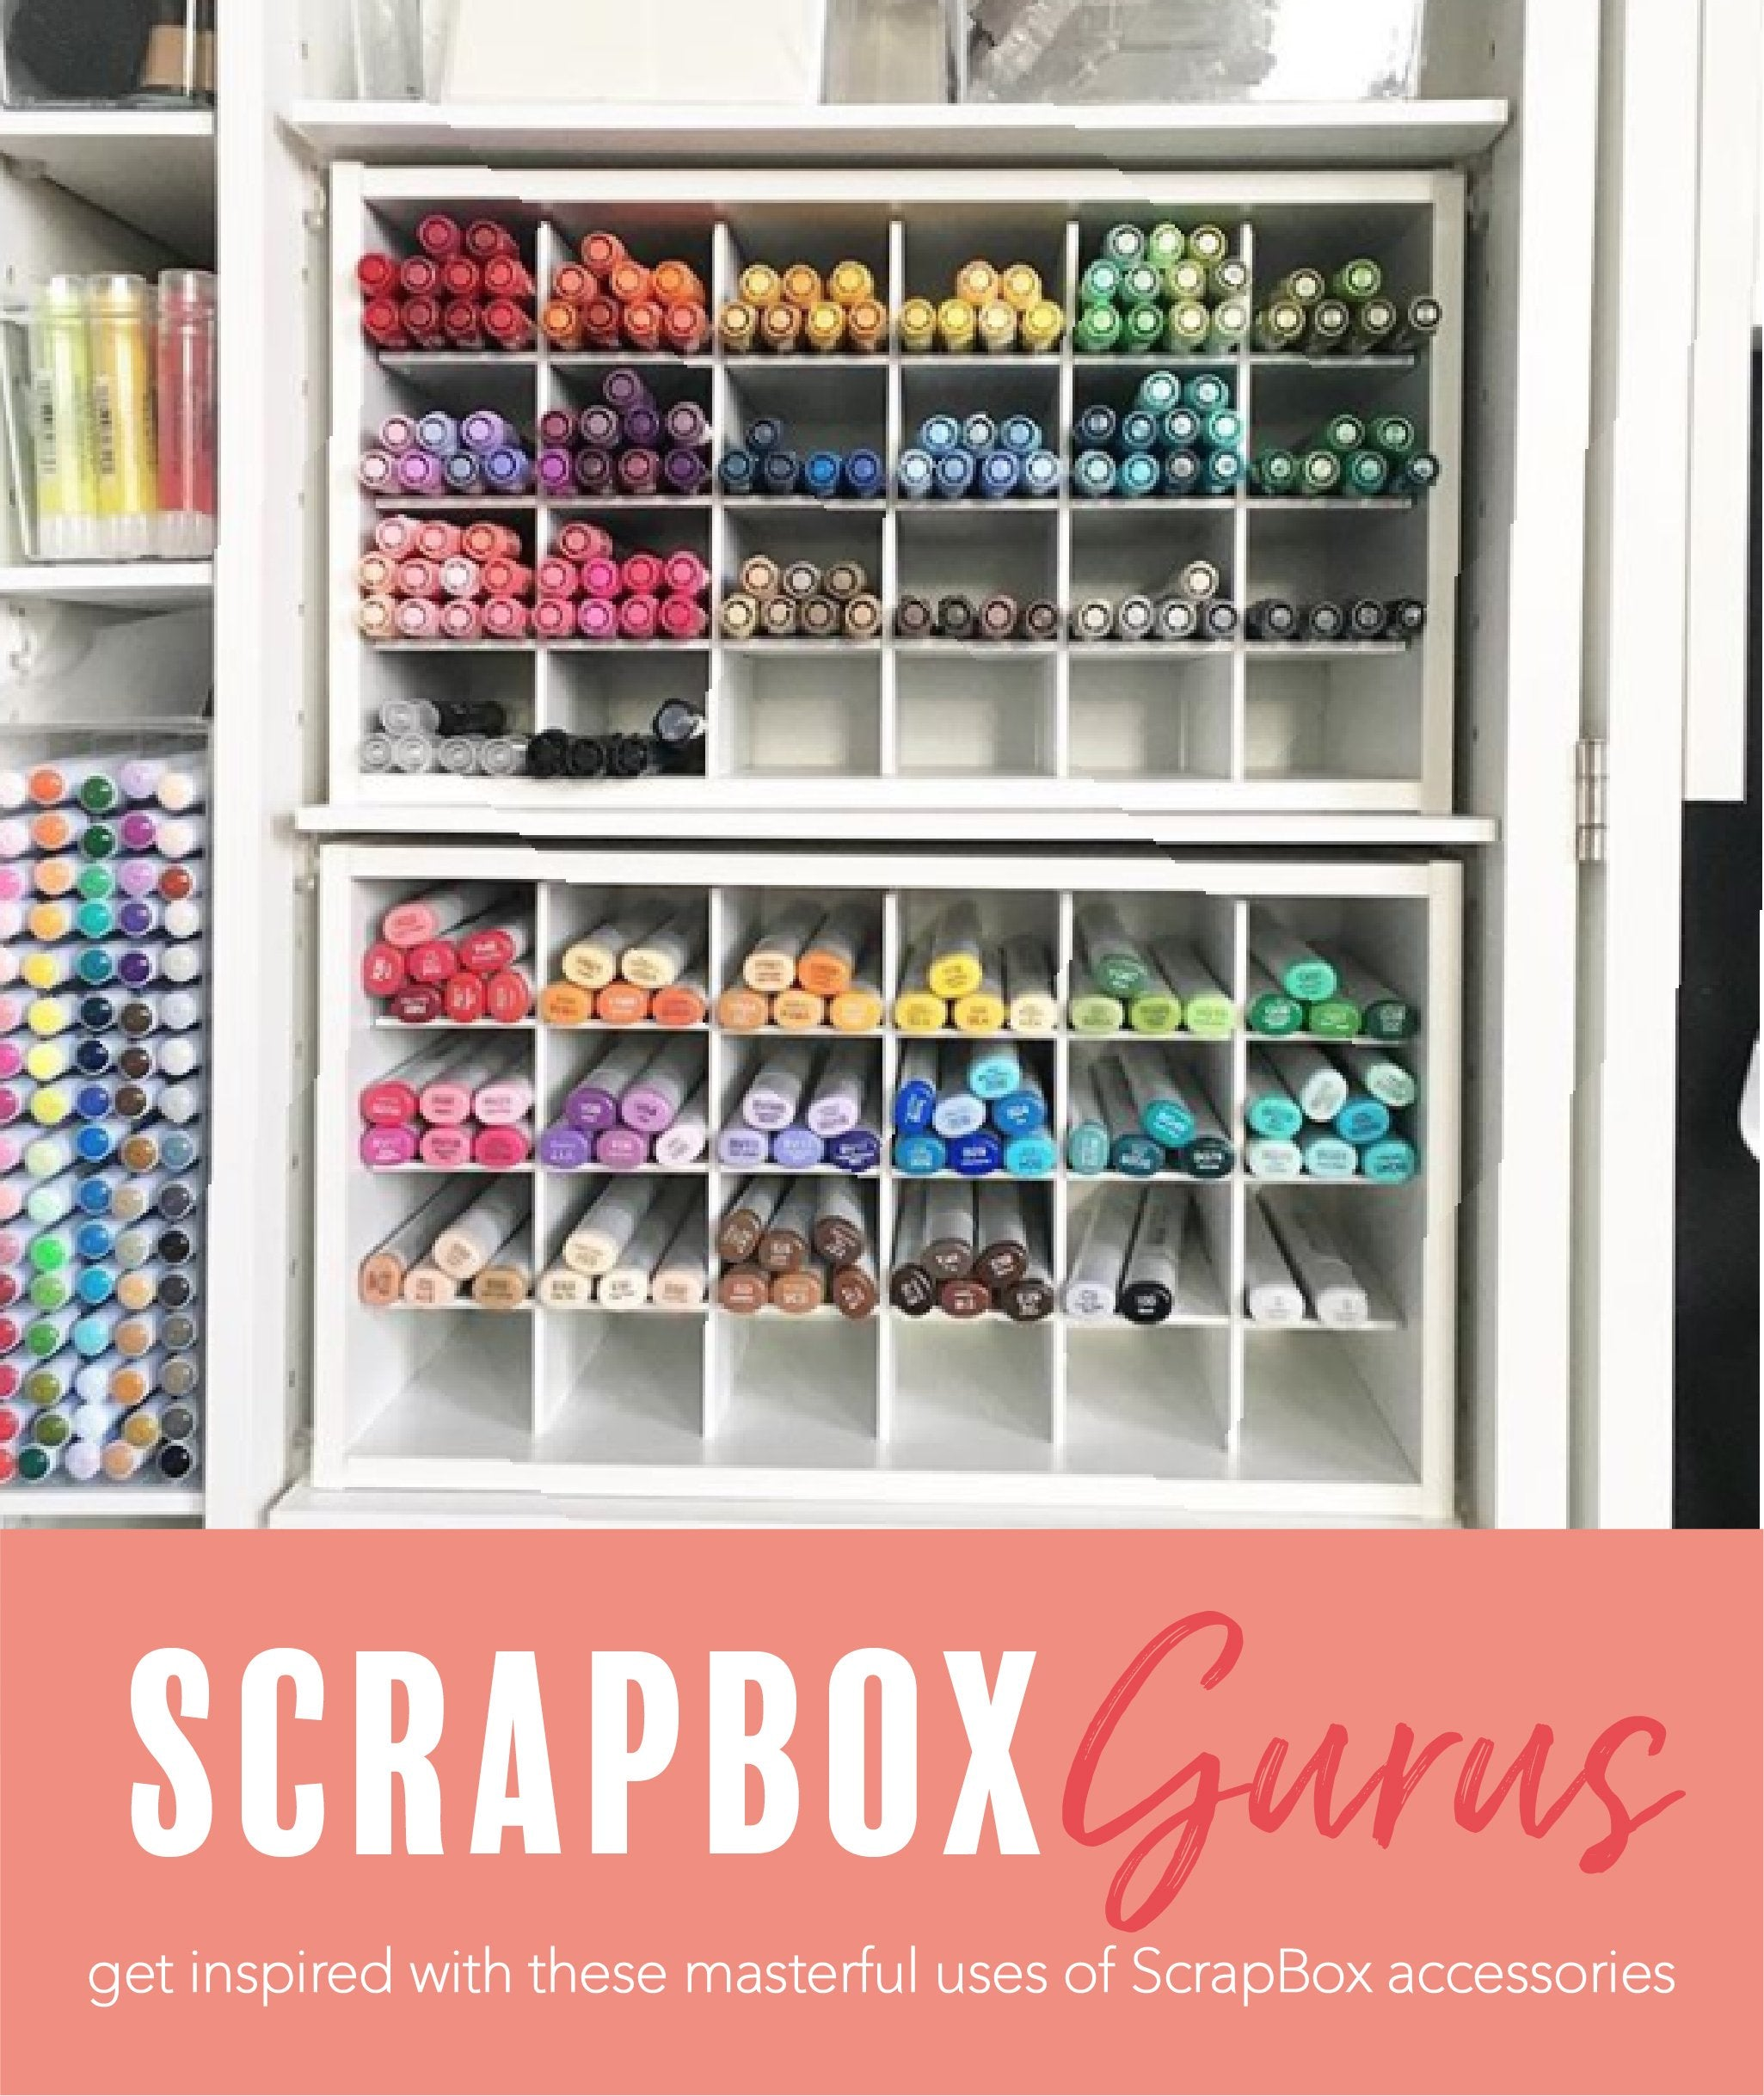 Get the most out of your ScrapBox furniture!